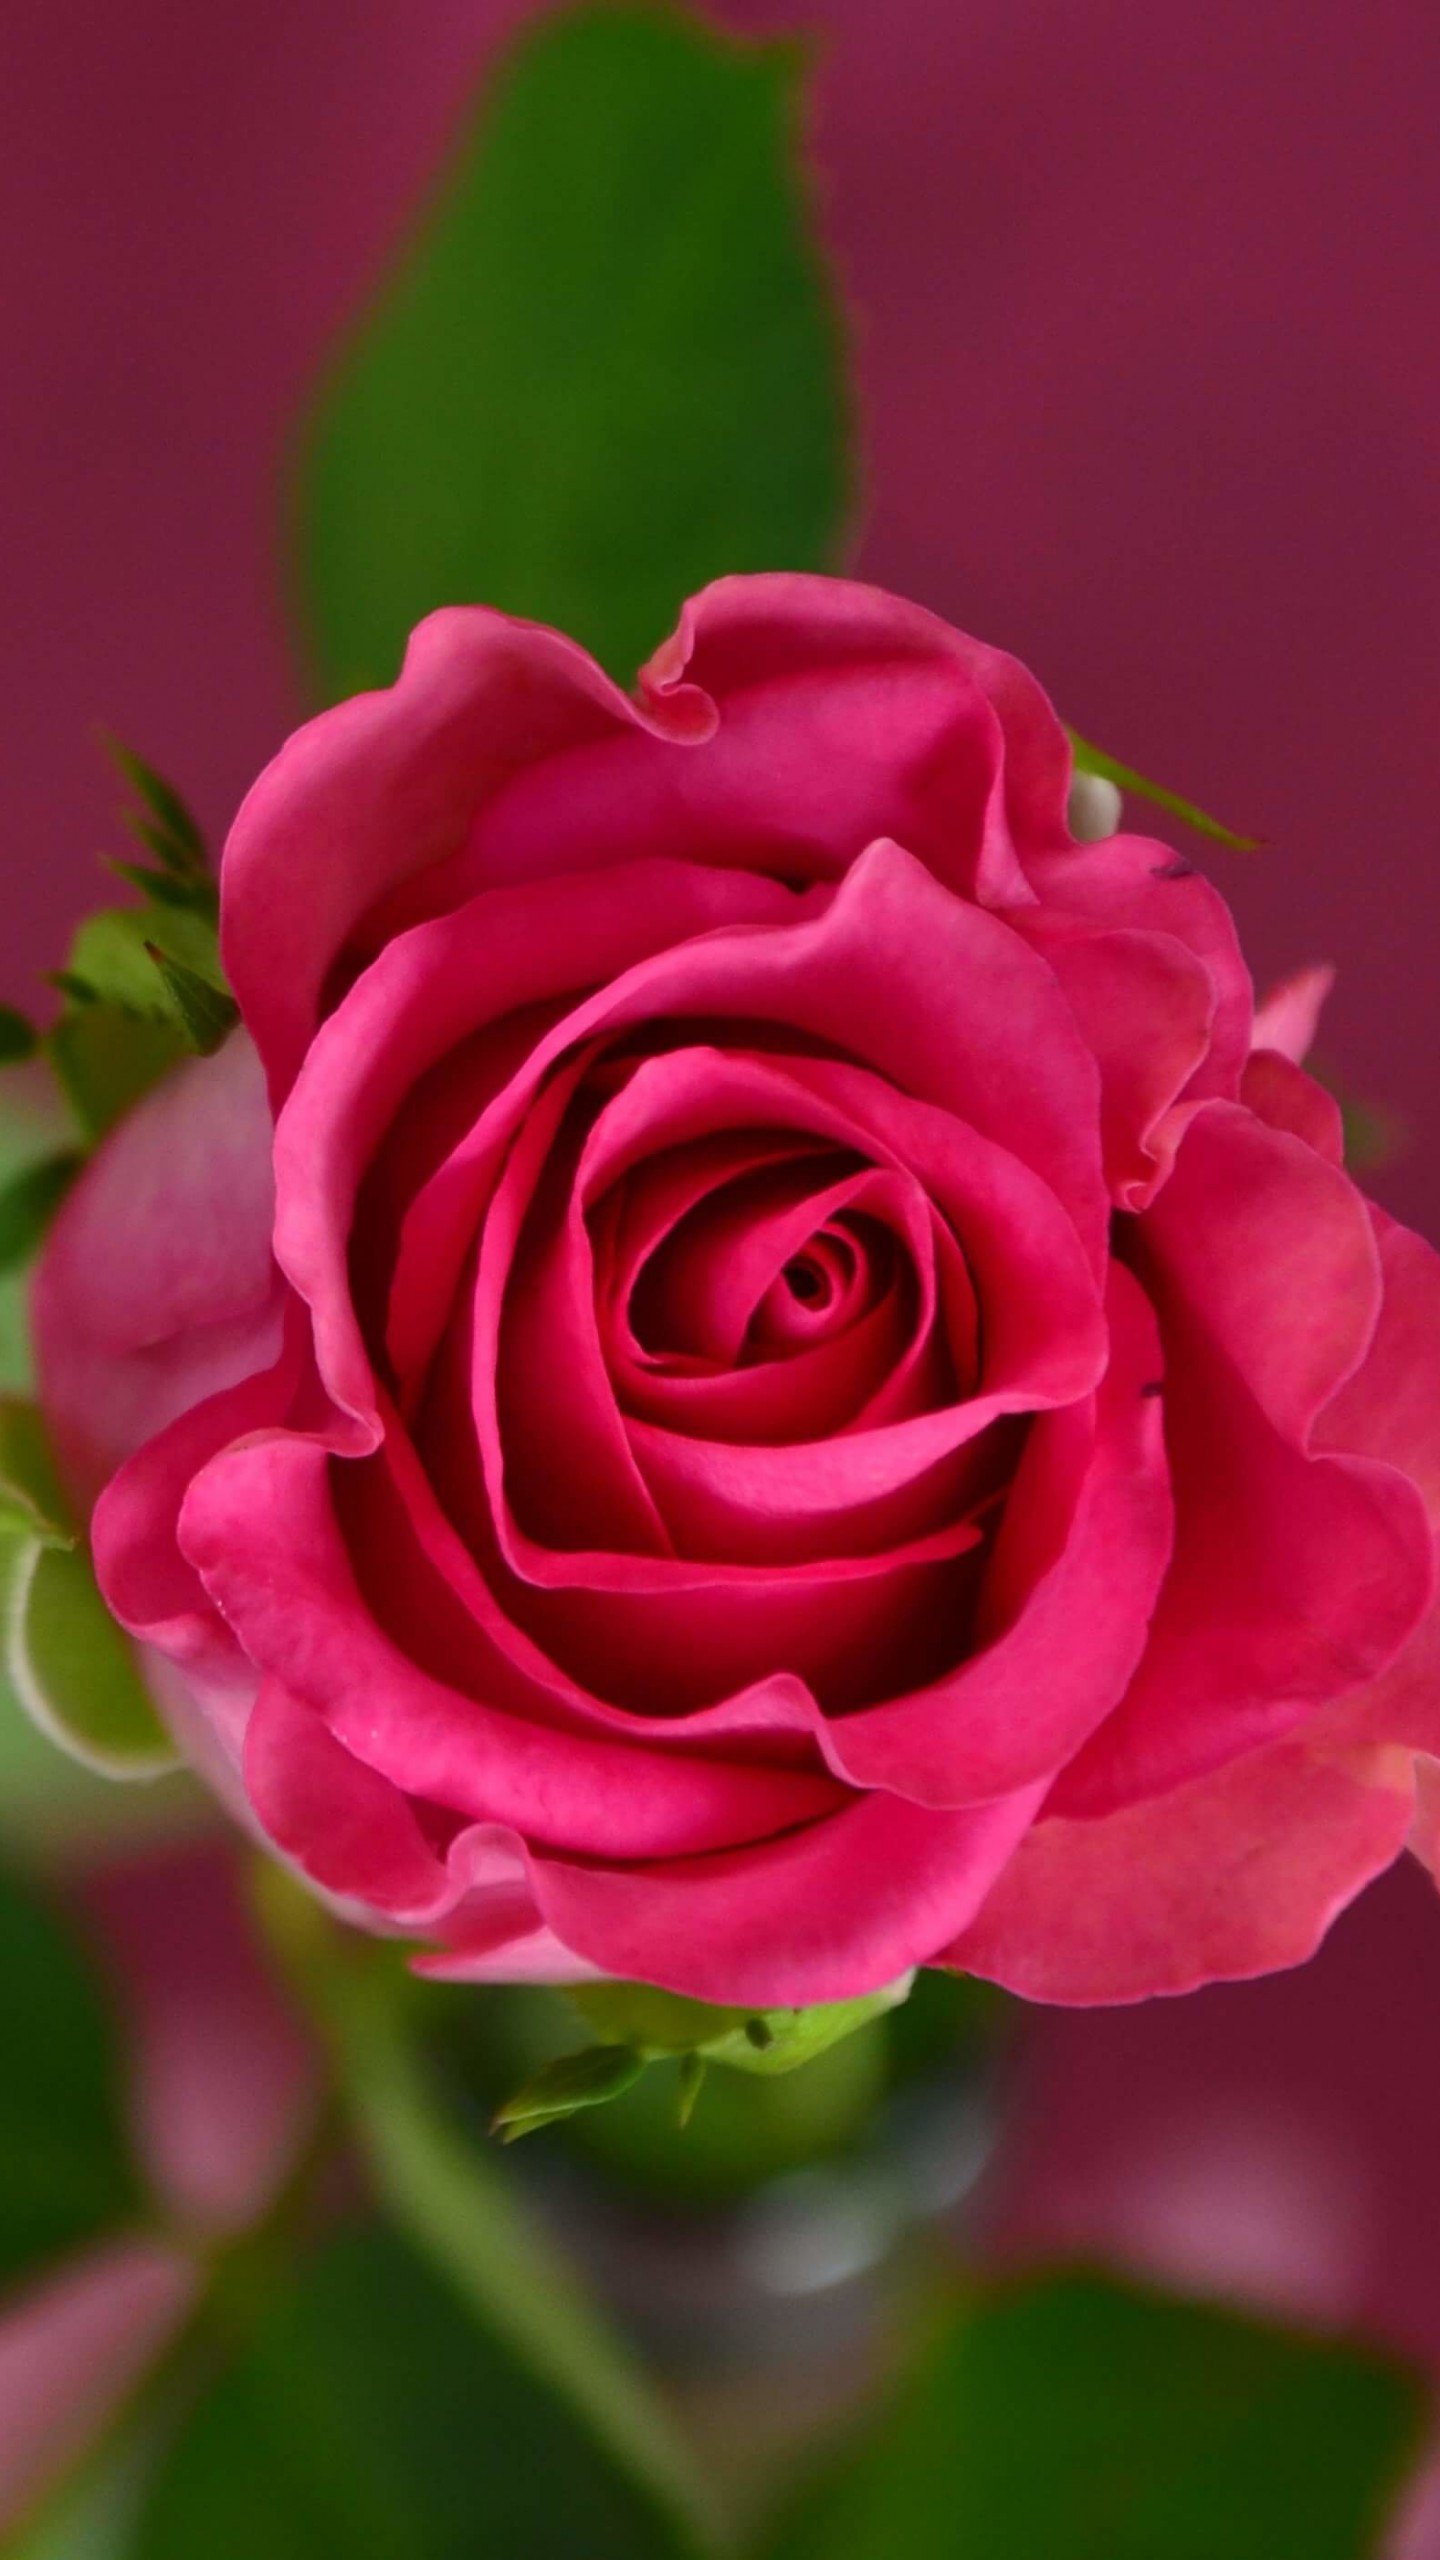 Single Pink Rose Wallpaper for SAMSUNG Galaxy S6